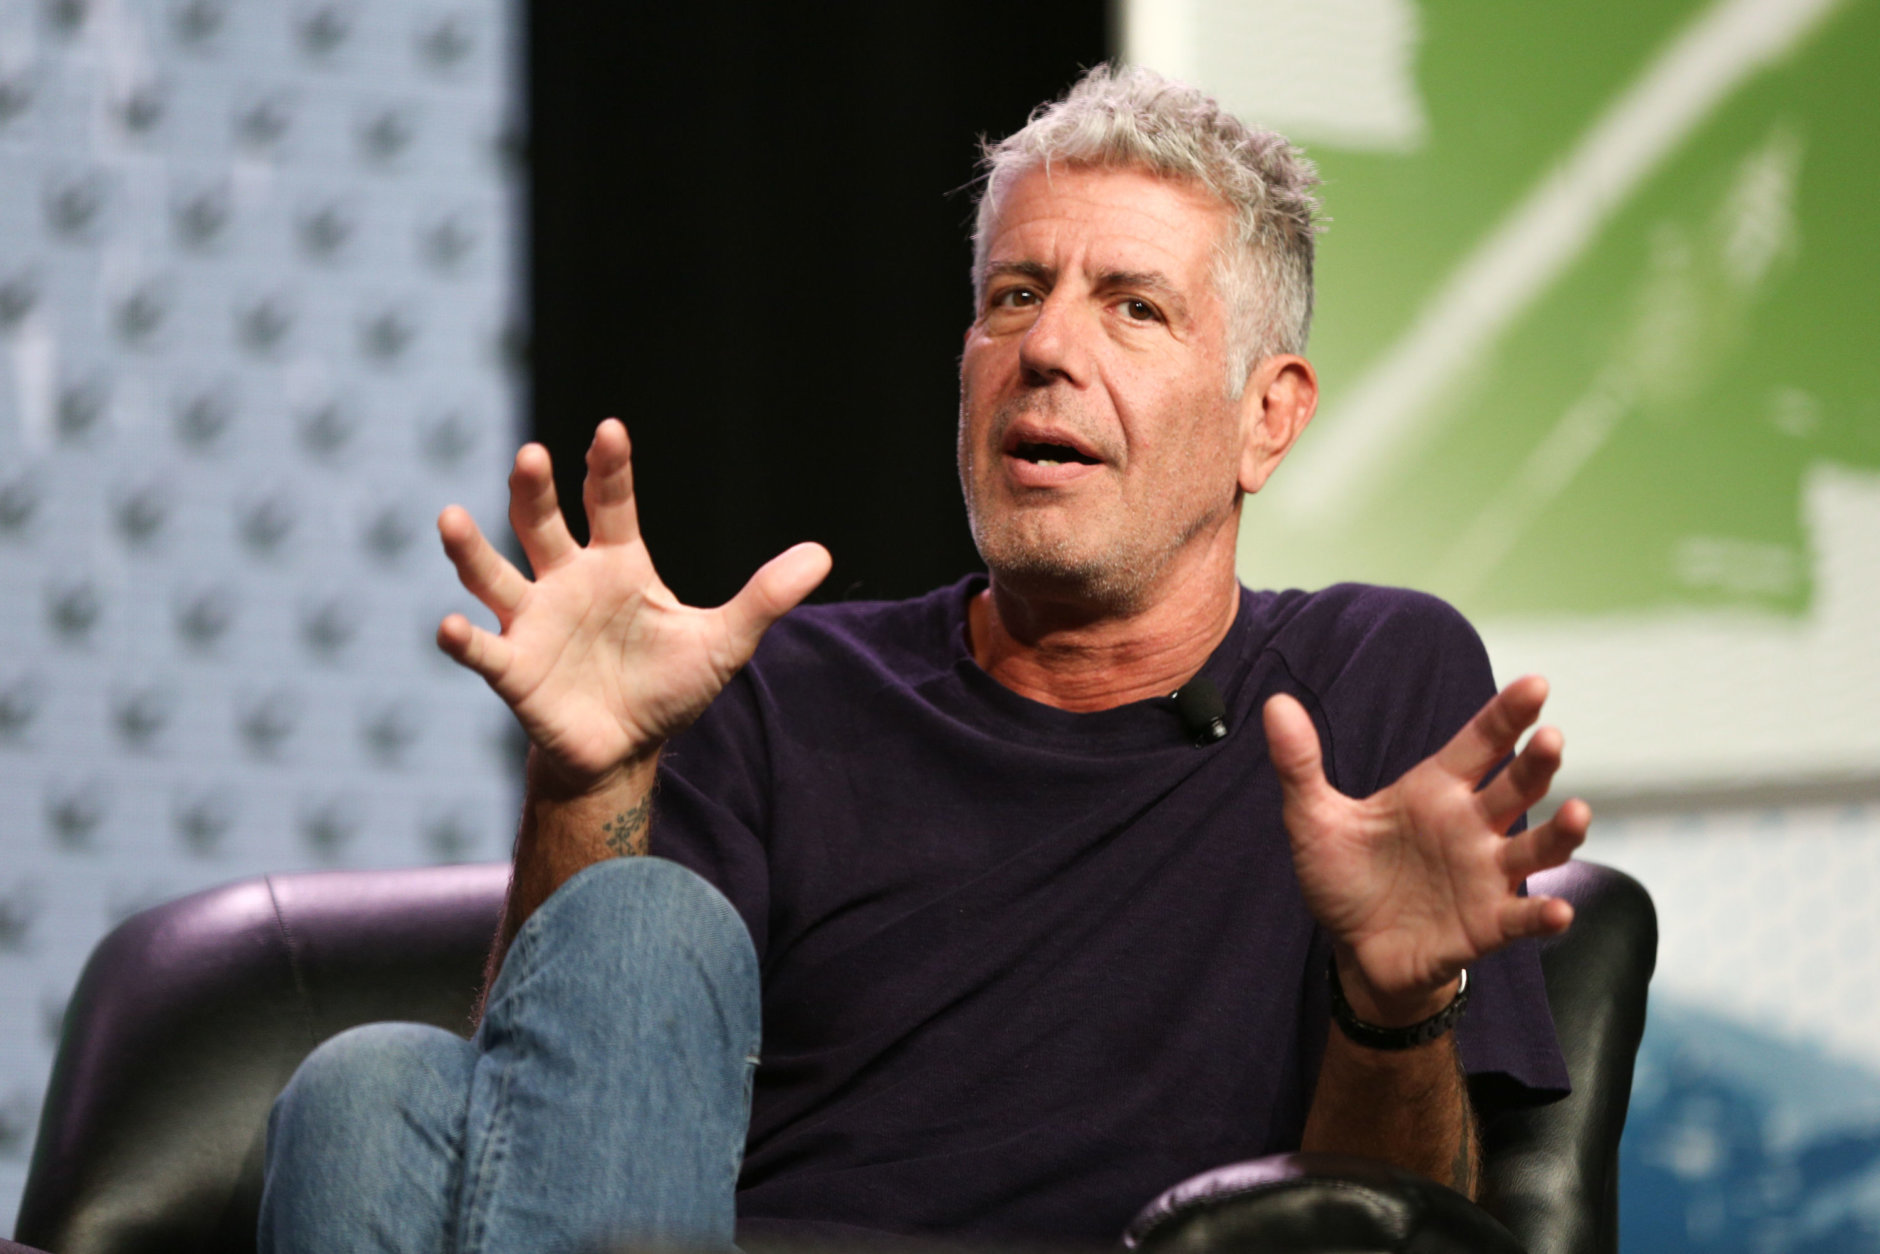 Anthony Bourdain died at 61 on June 8, 2018. The world-renowned chef is seen in the file photo speaking during South By Southwest at the Austin Convention Center on Sunday, March 13, 2016, in Austin, Texas. (Photo by Rich Fury/Invision/AP)